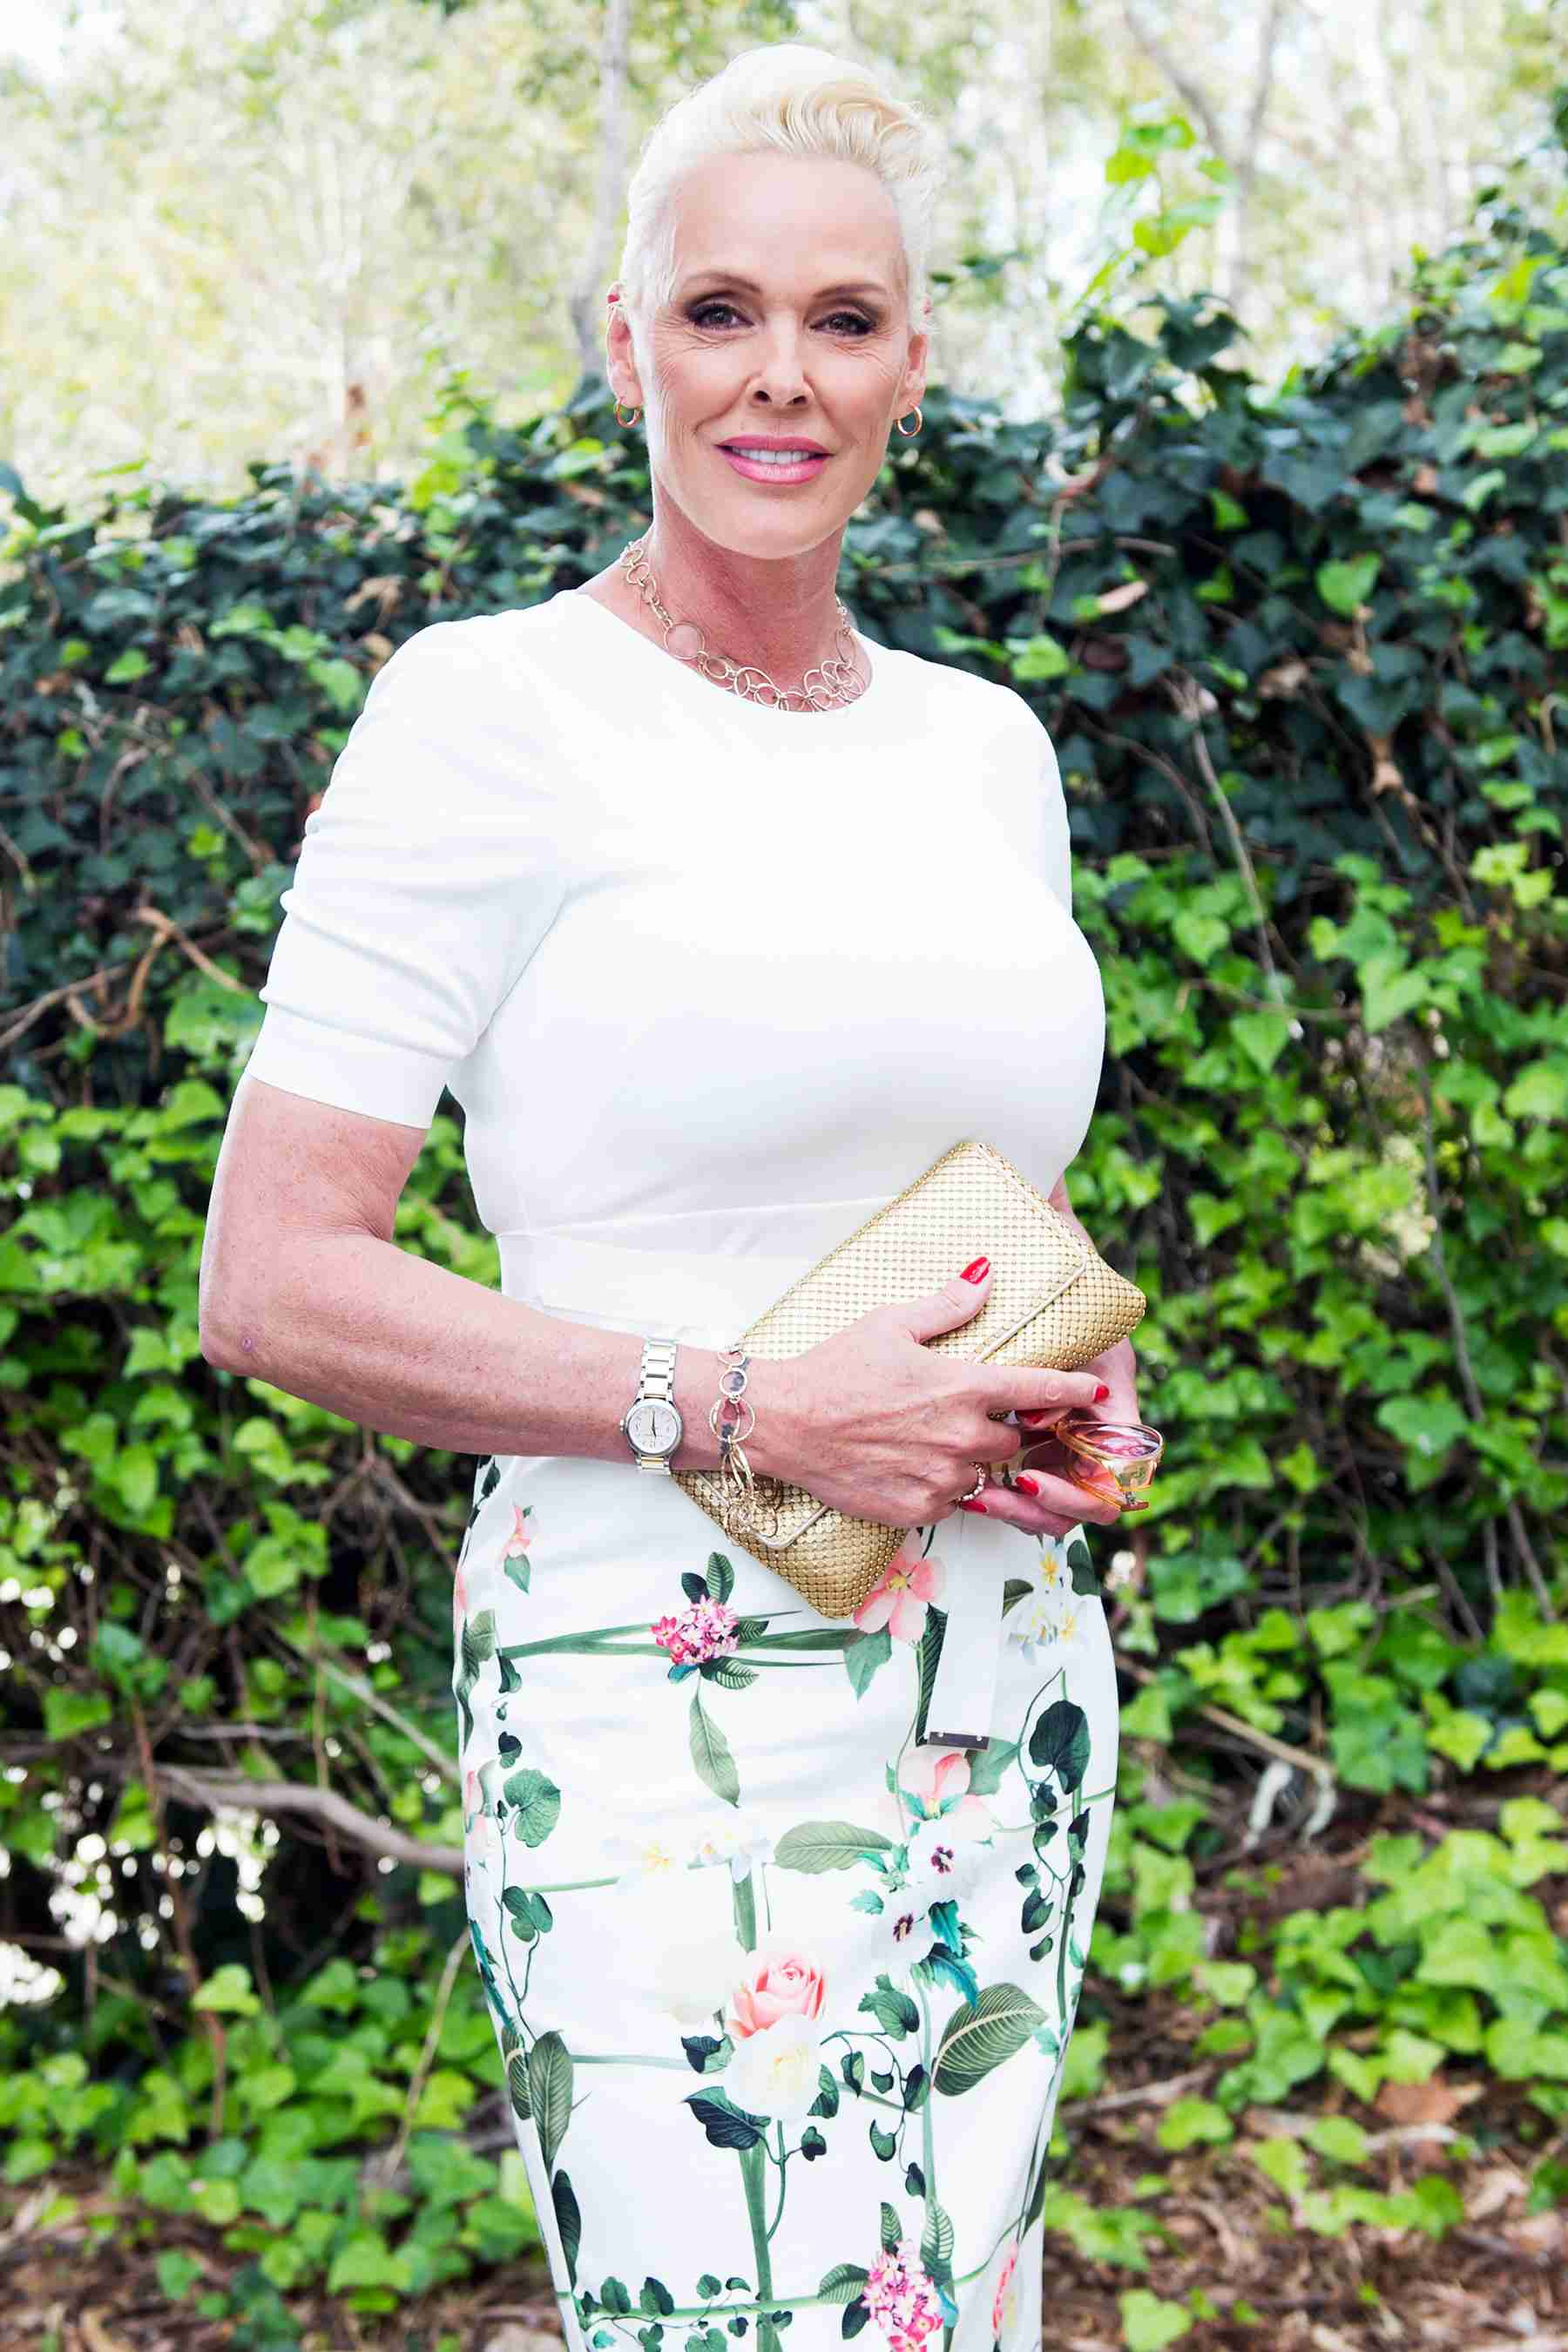 Pregnant Brigitte Nielsen, 54, Previously Said She'd 'Try IVF' | PEOPLE.com